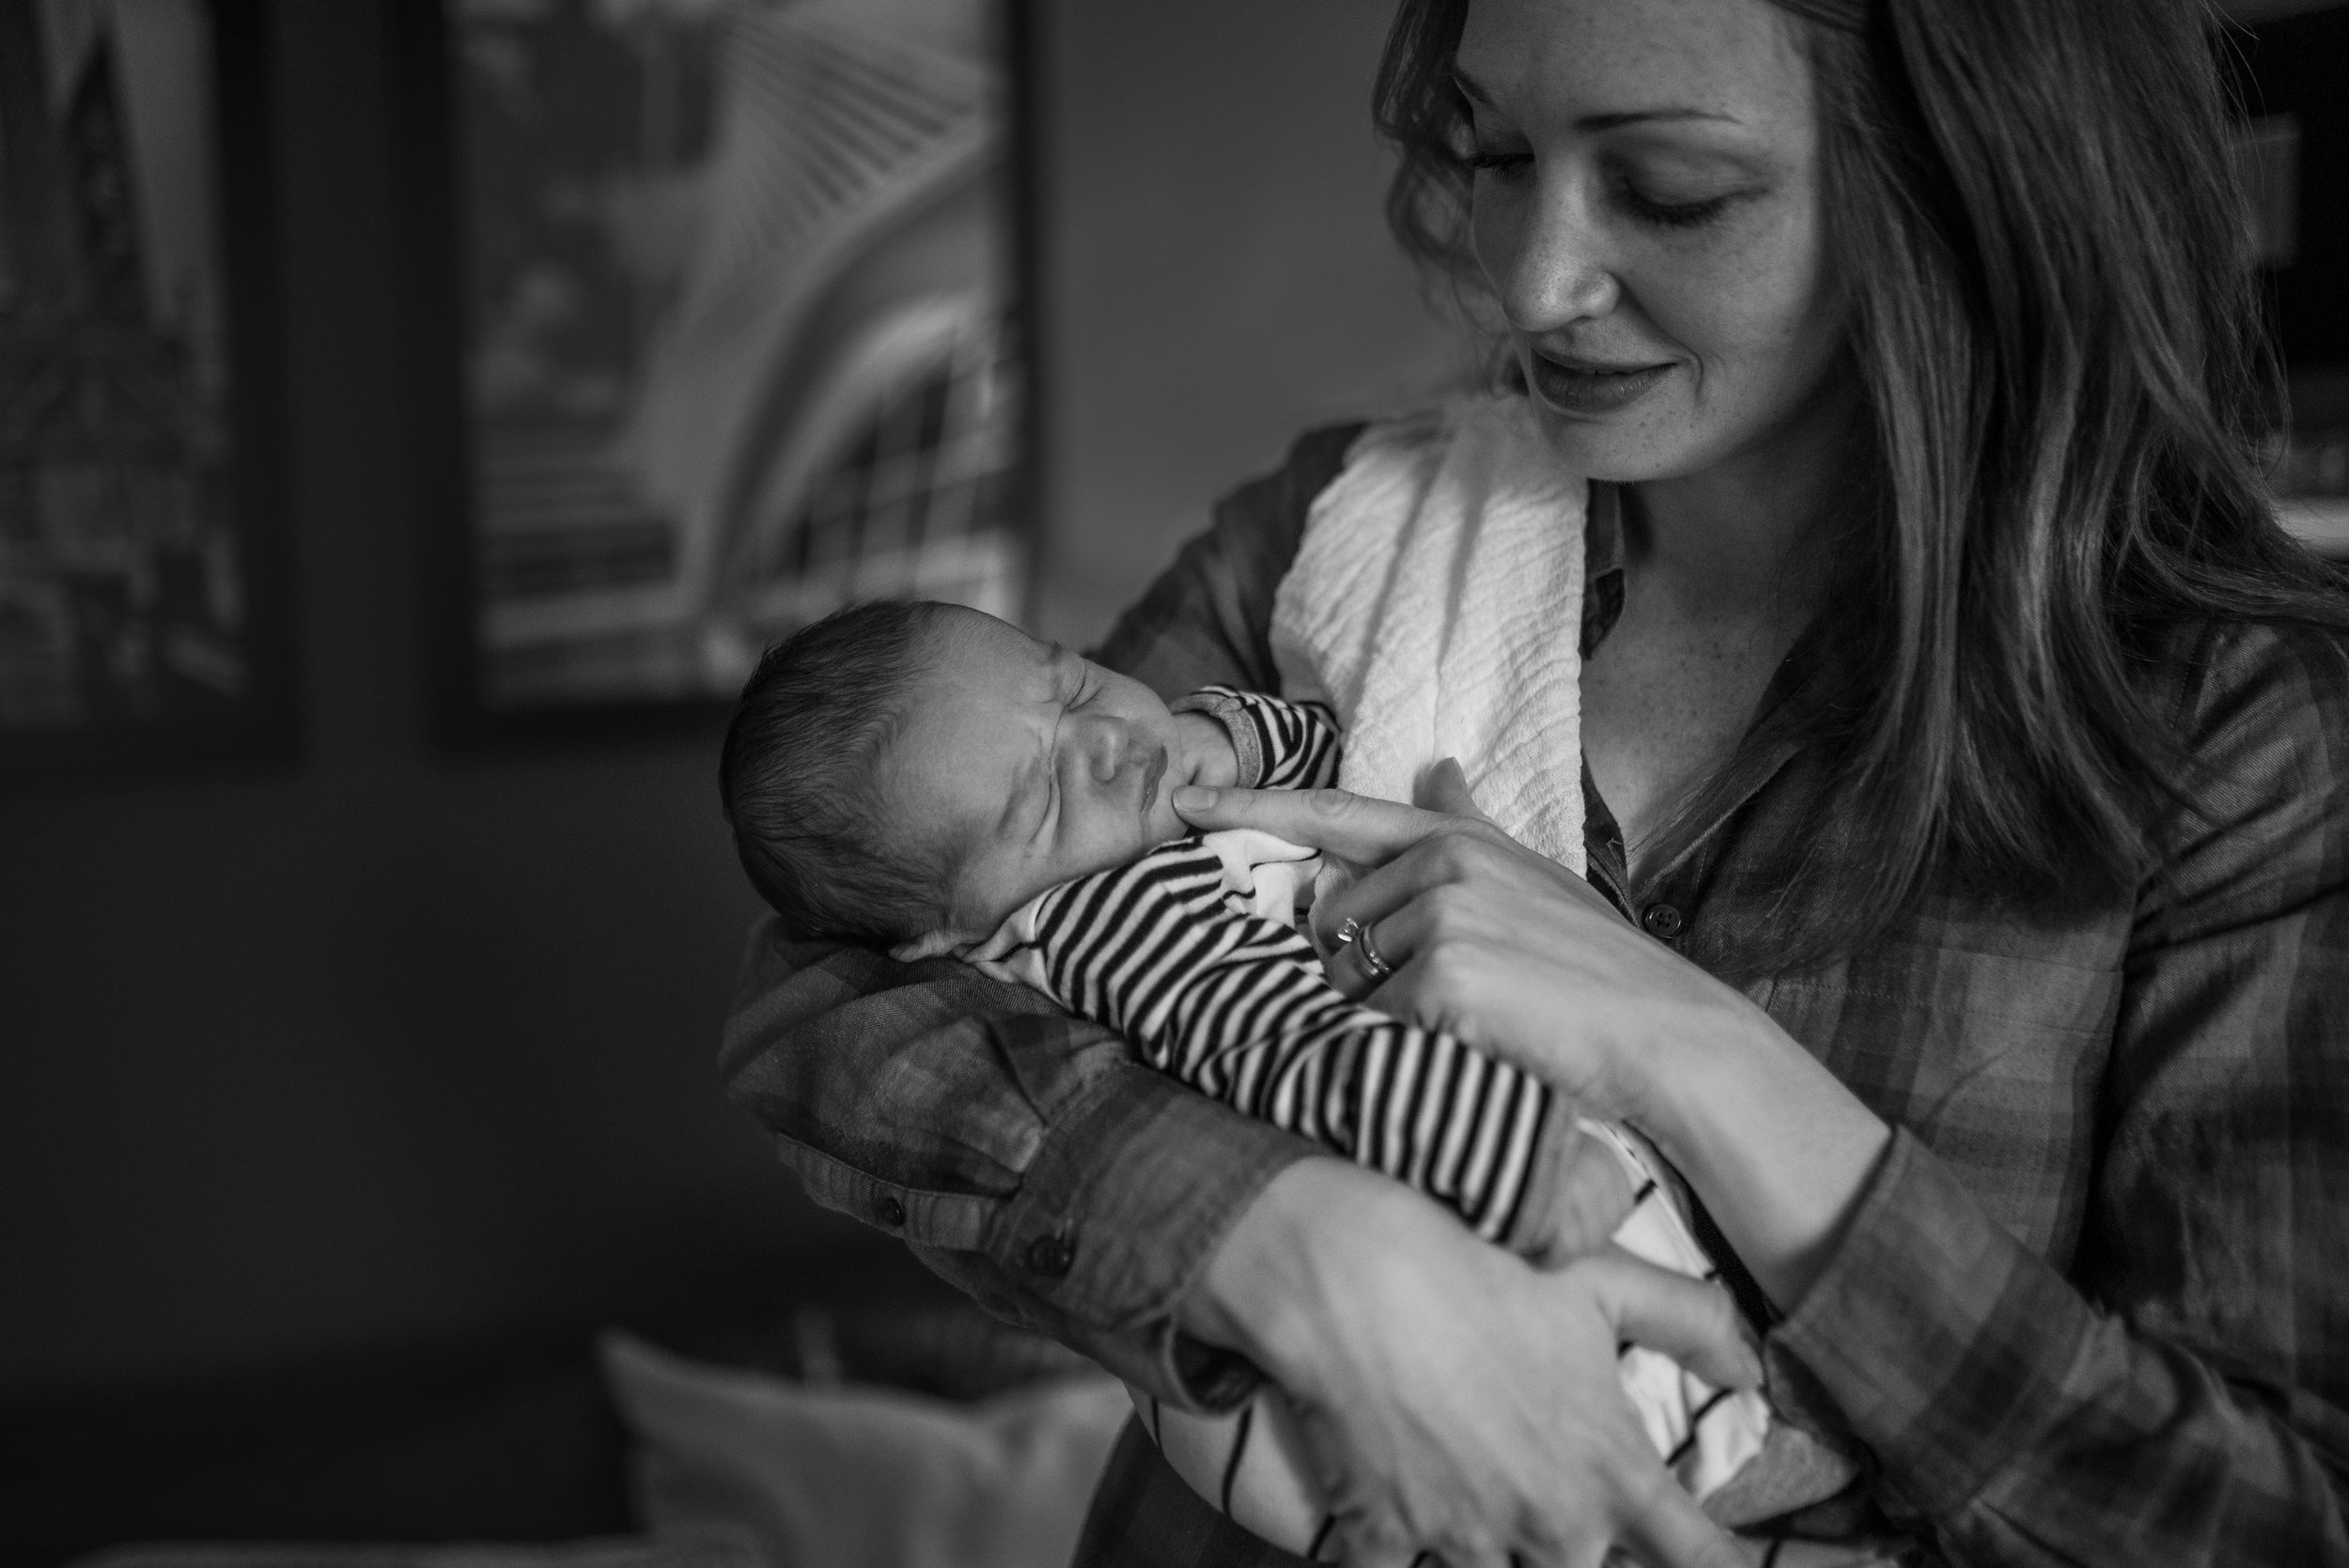 New mom holding newborn baby and looking at baby lovingly poking his chin with her finger